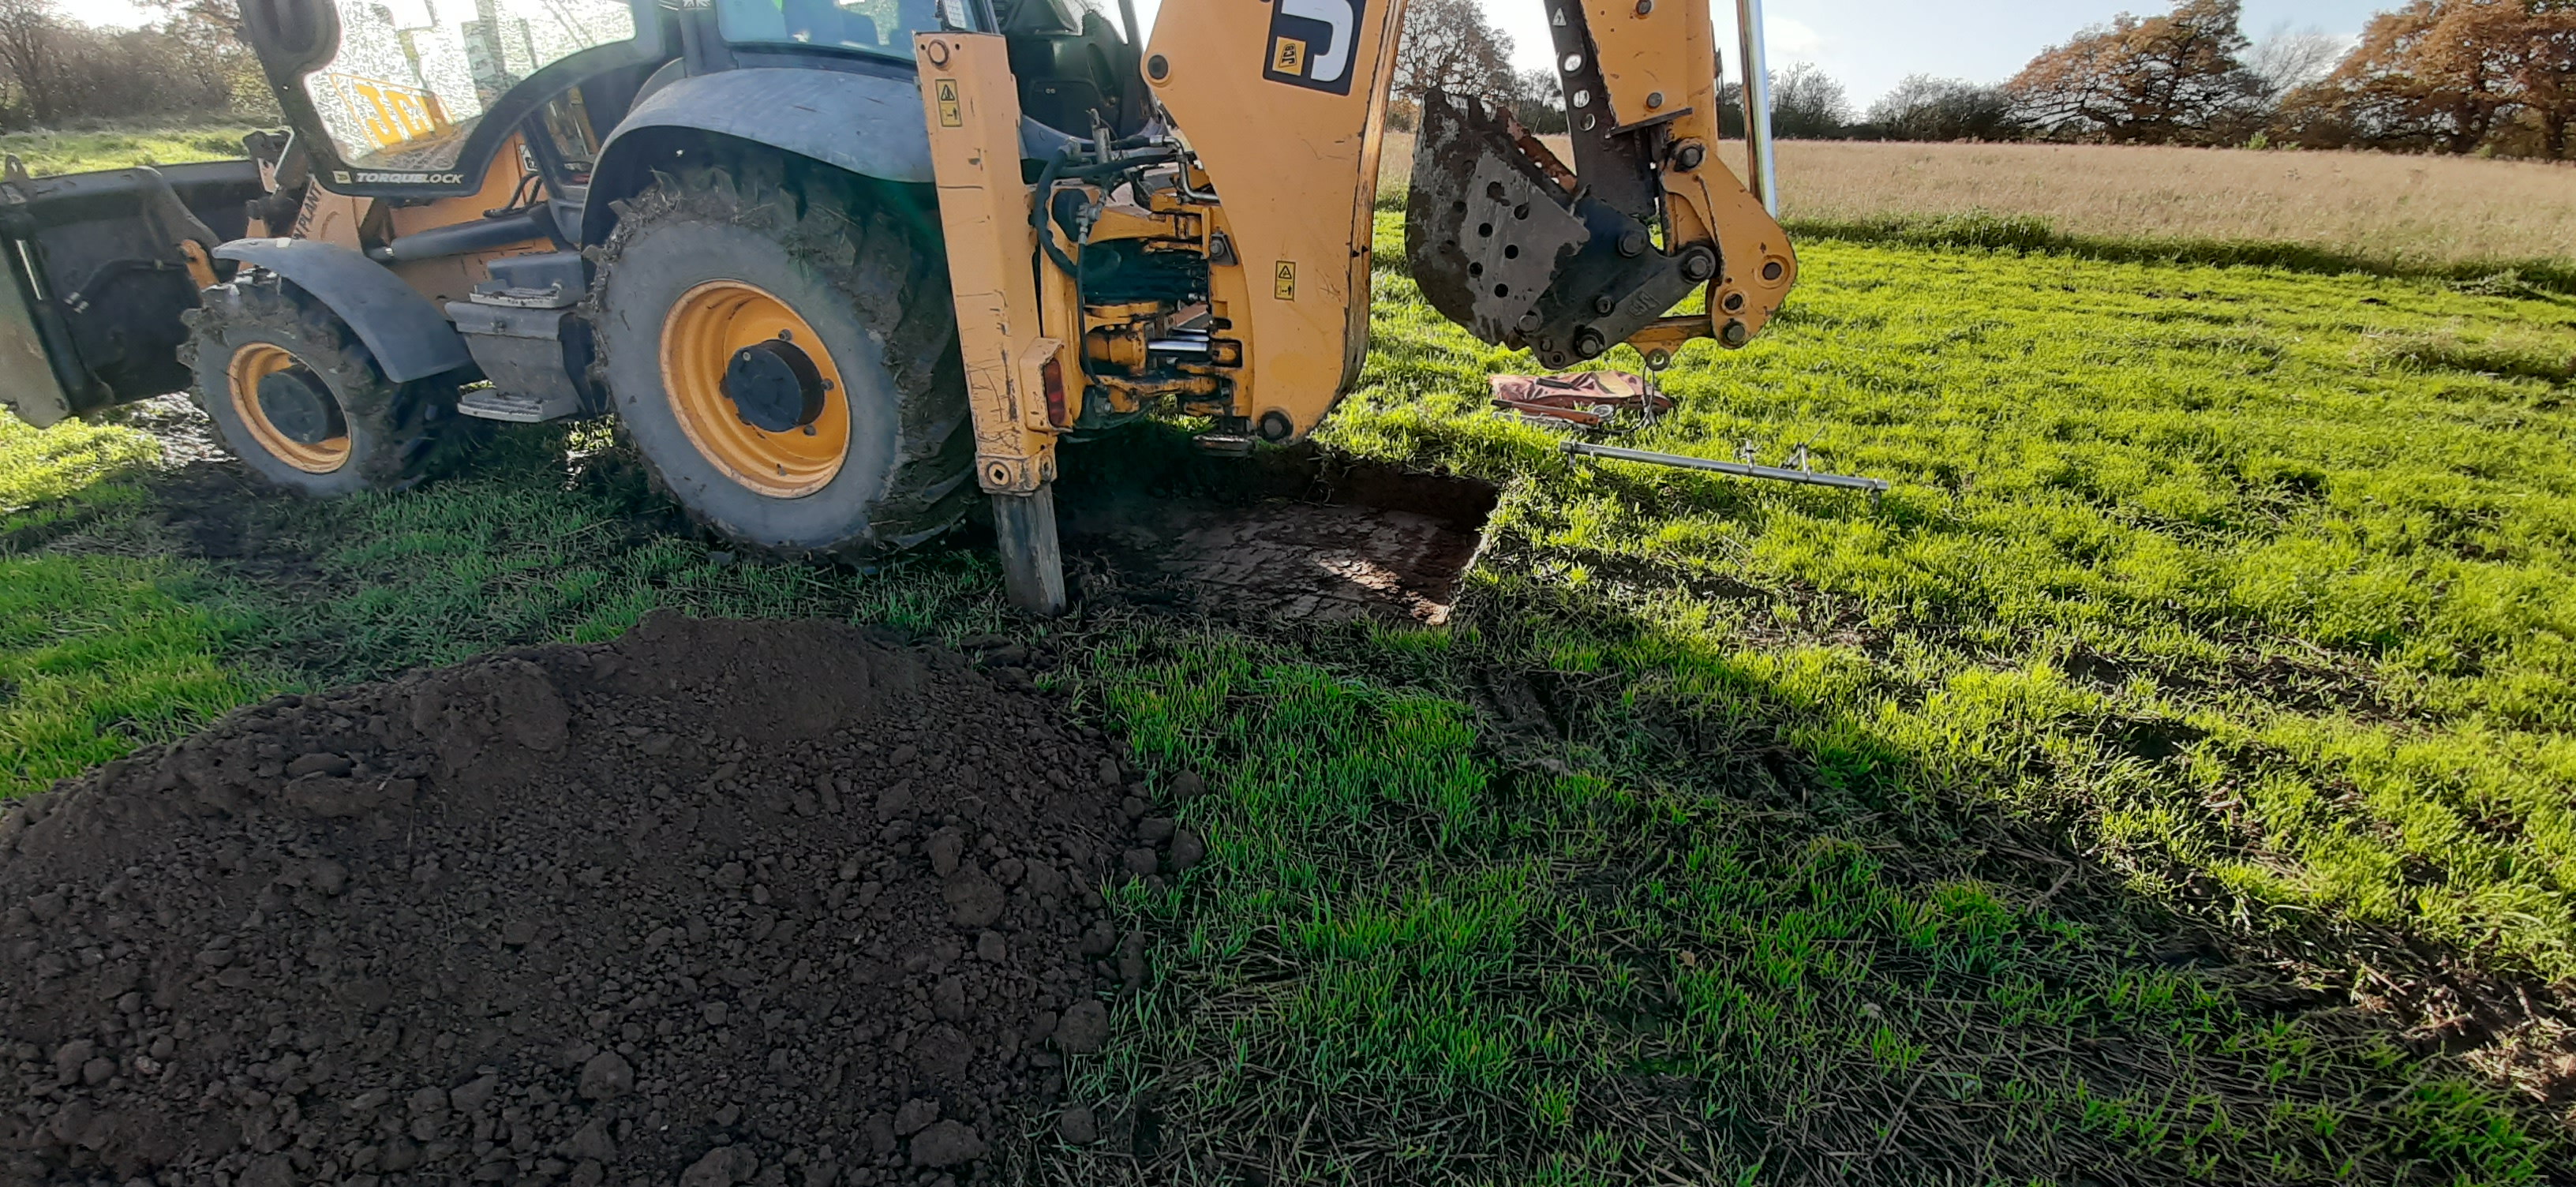 JCB 3CX CBR Tests